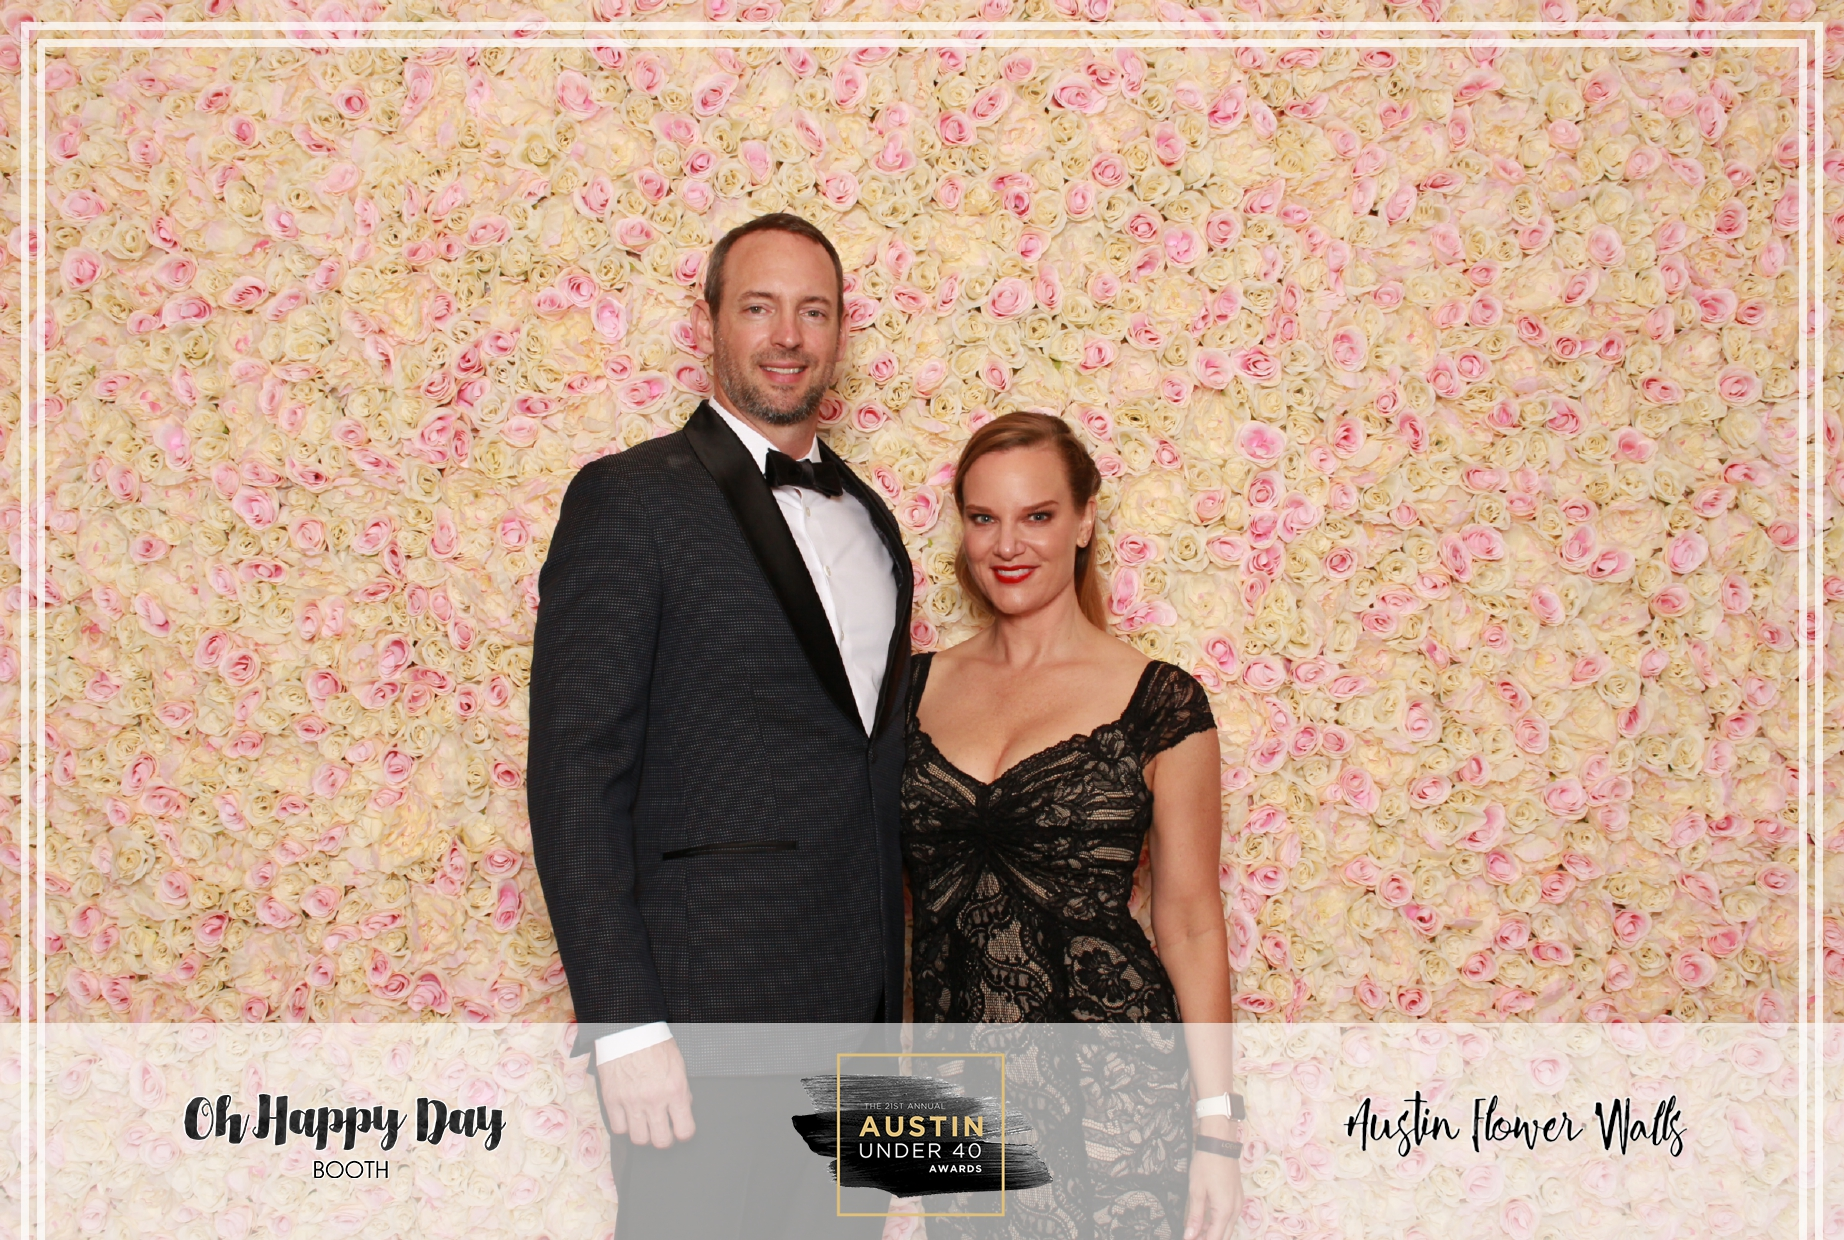 Oh Happy Day Booth - Austin Under 40-67.jpg